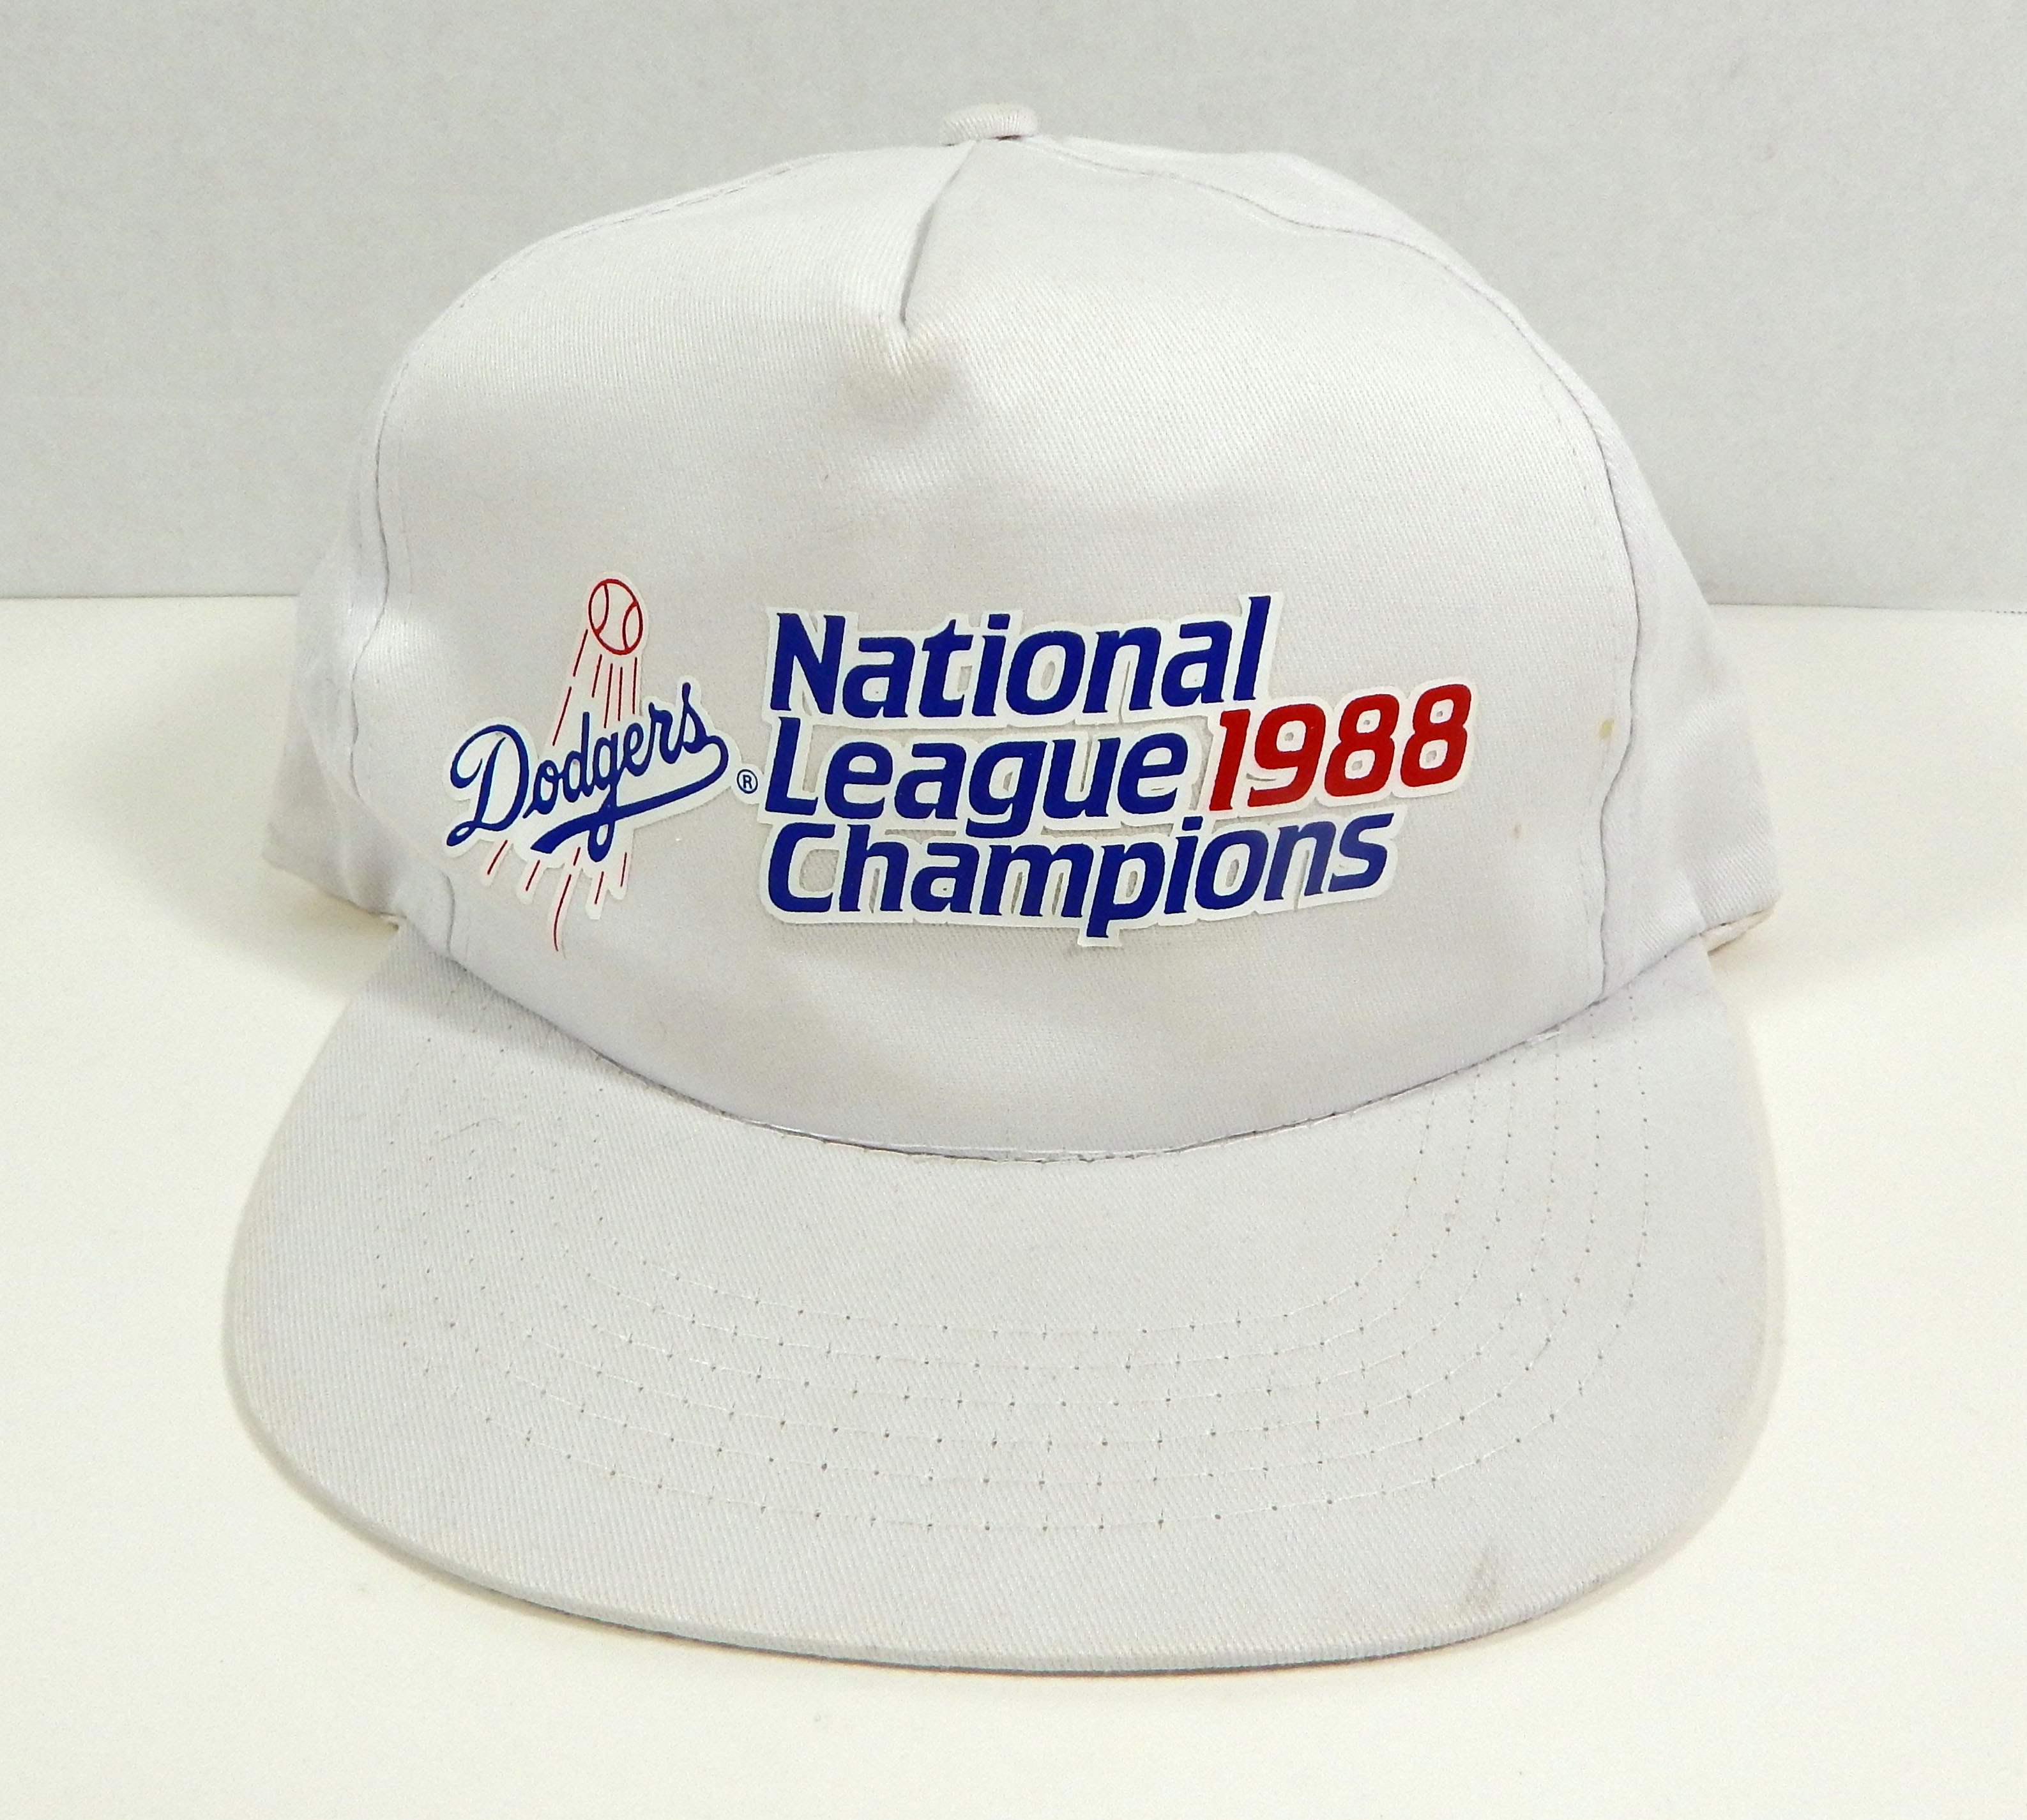 b934f46ee Details about Vintage 1988 Los Angeles Dodgers National League Champions  White Snapback Hat